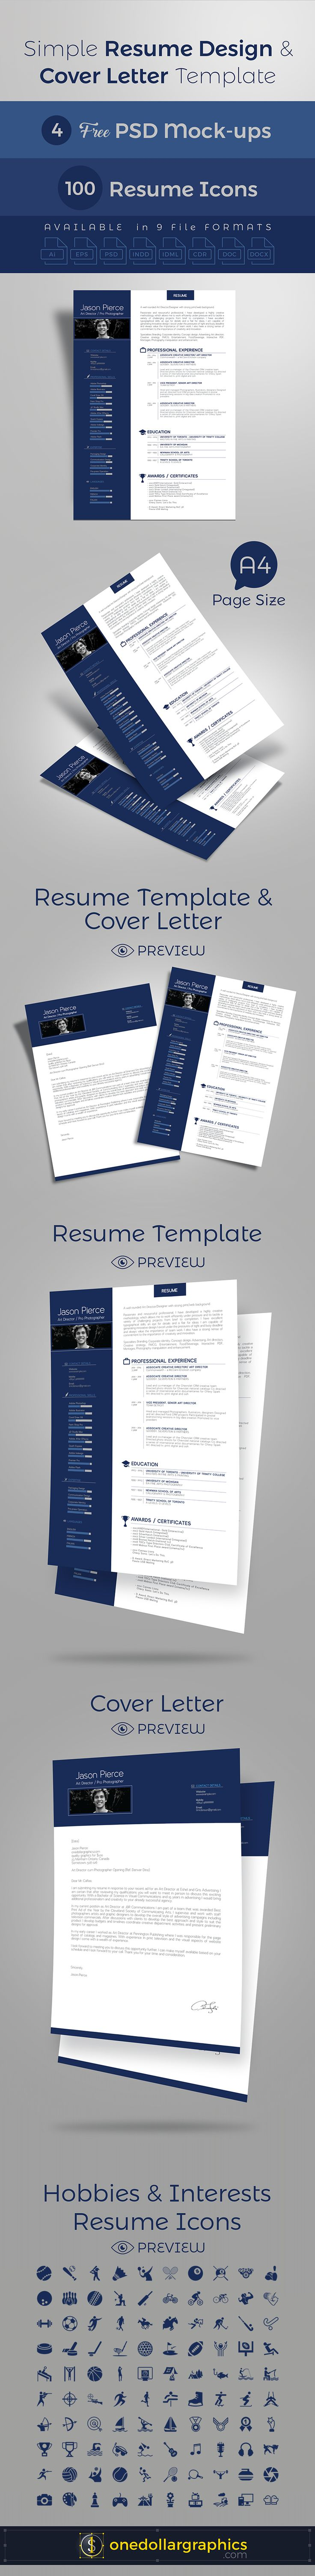 Amusing Resume Free Templates Amusing Resume Free